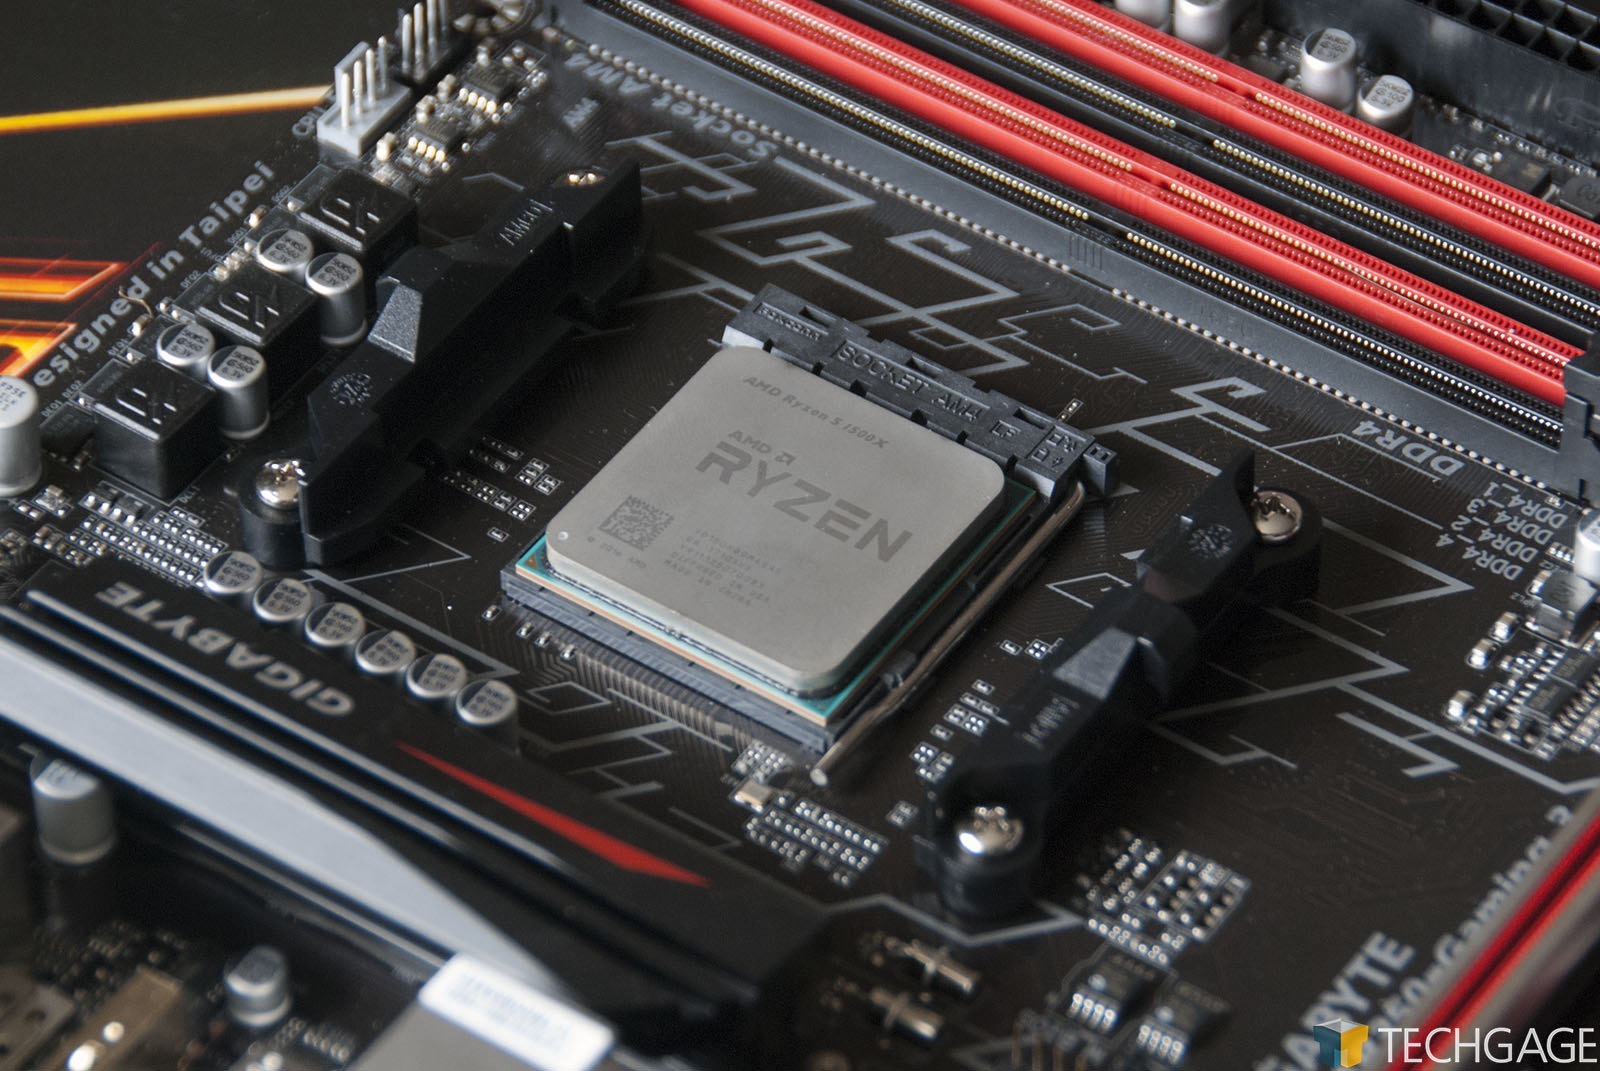 Ryzen For The Masses A Look At Amds 5 1600x 1500x Amd R5 Processors Techgage